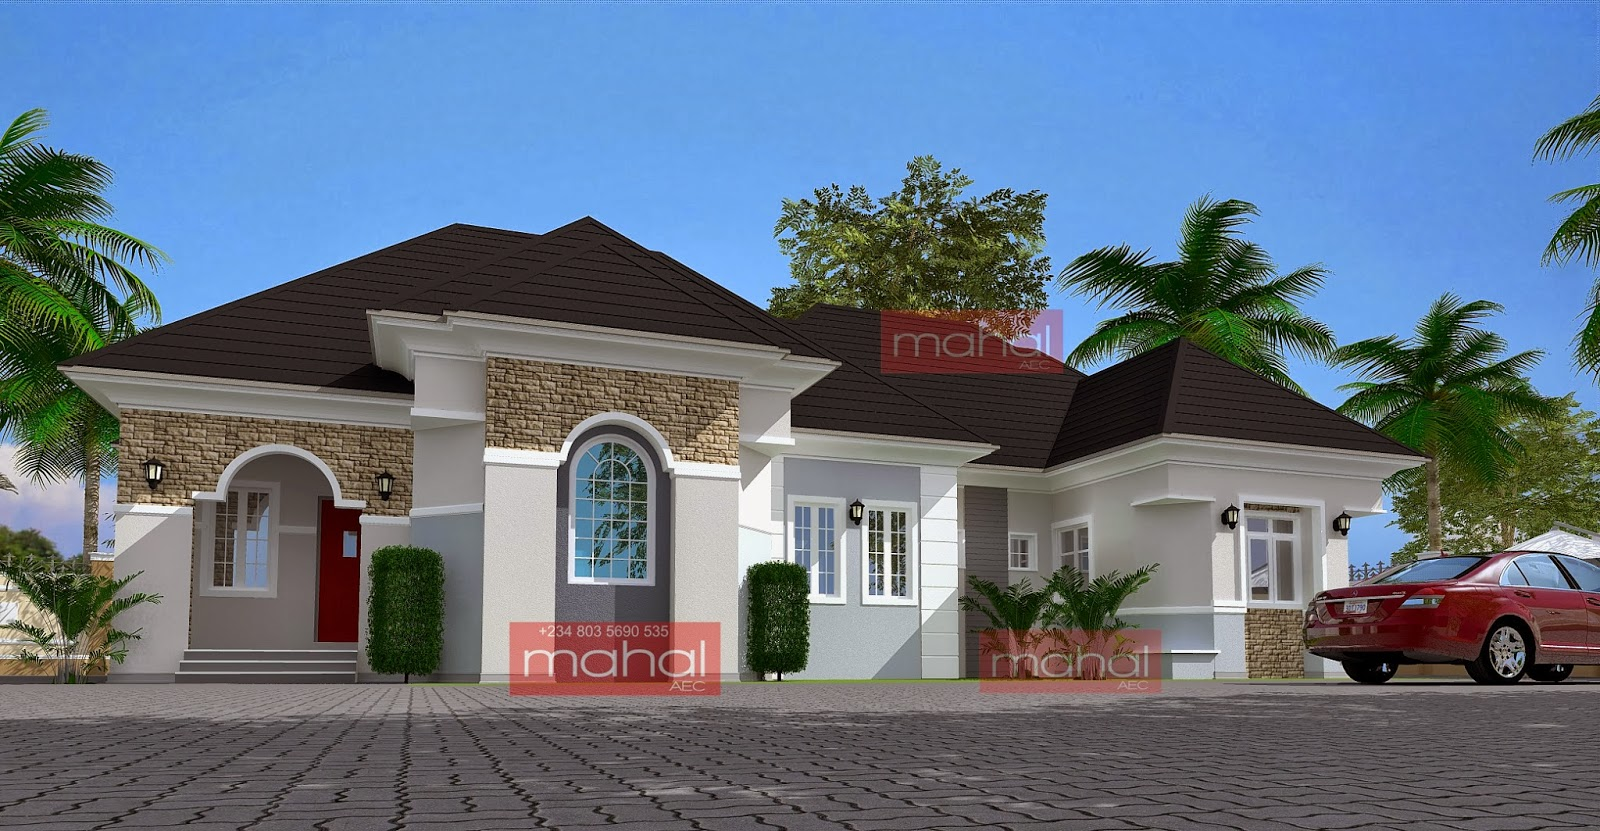 Contemporary nigerian residential architecture alberta house for Nigeria modern houses